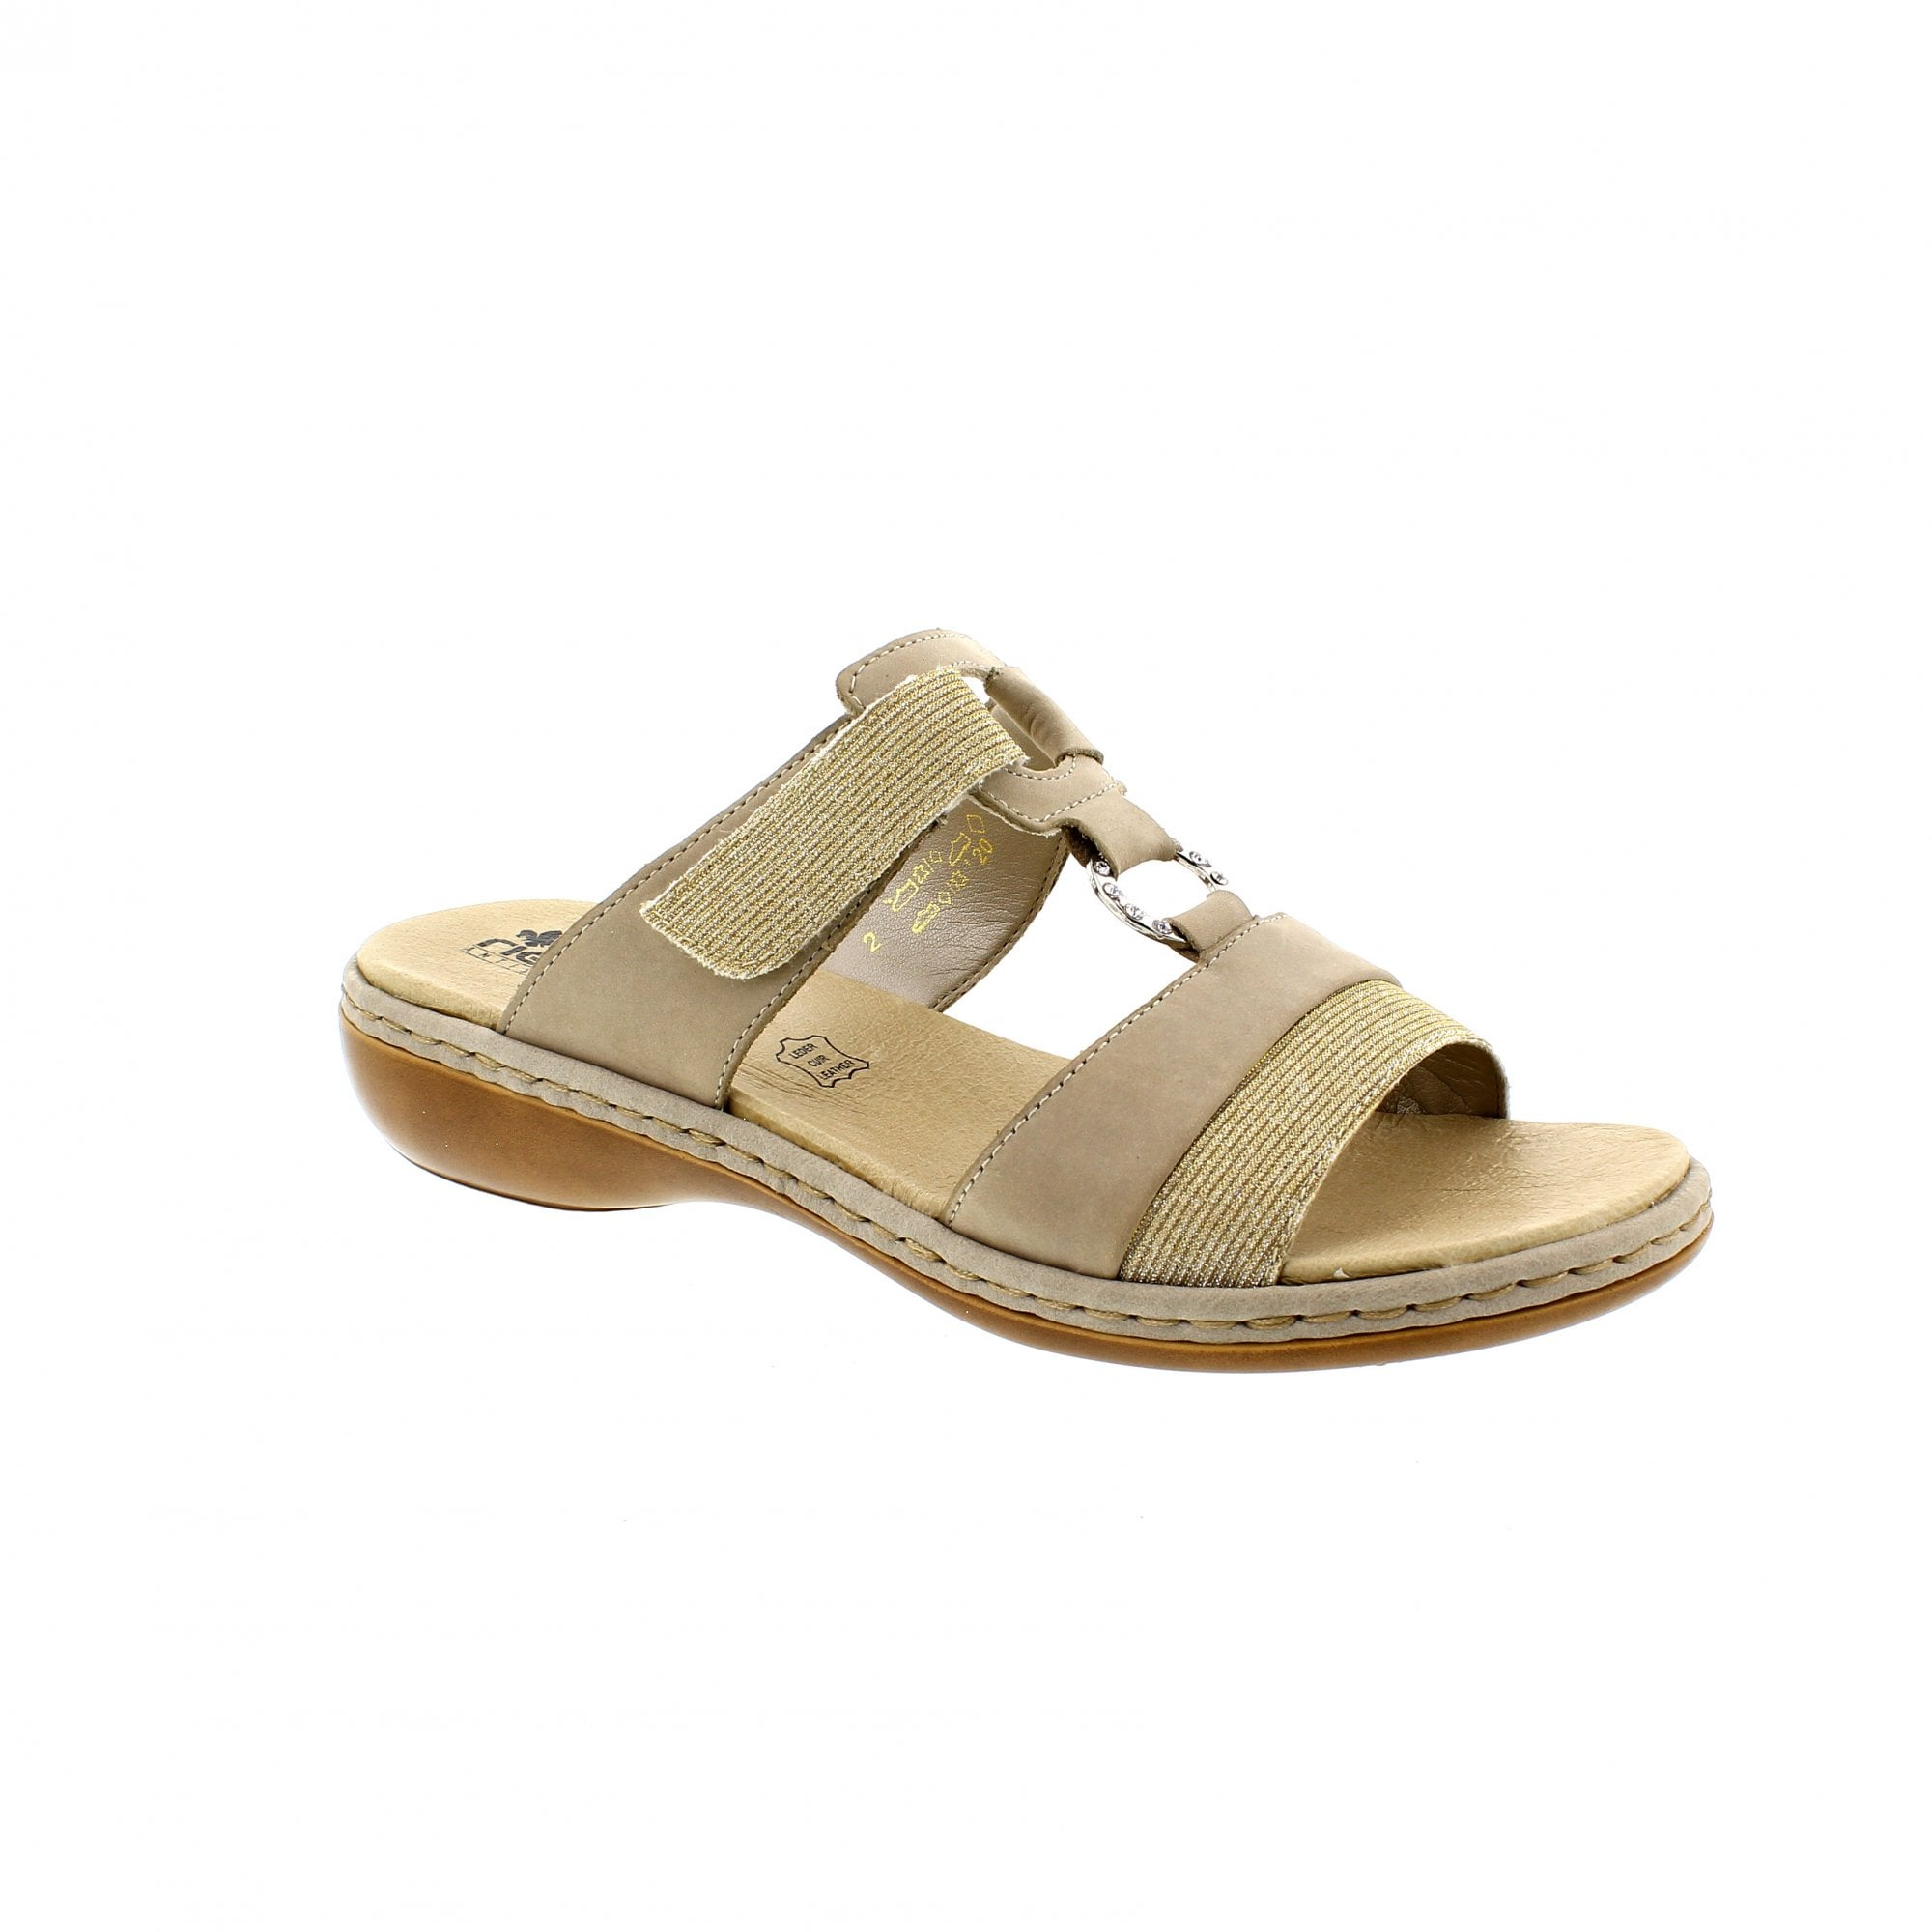 Rieker V3281 80 PewterOff White Womens Mule Sandals